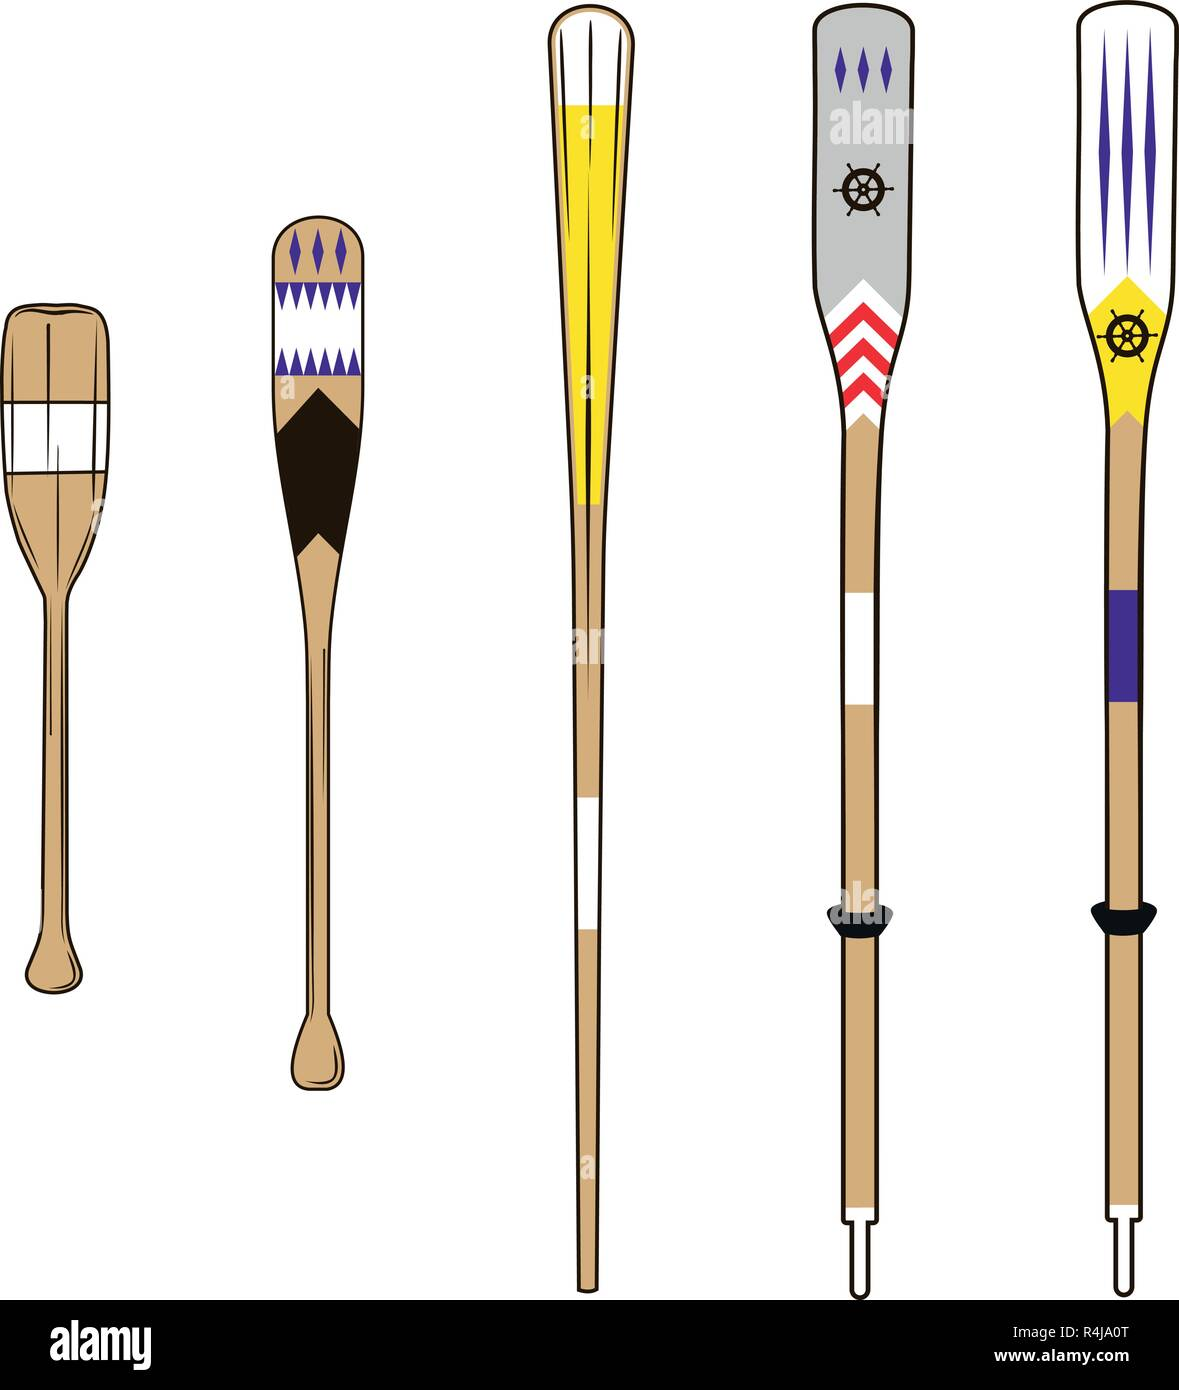 various types of wooden oars with various colors - Stock Vector